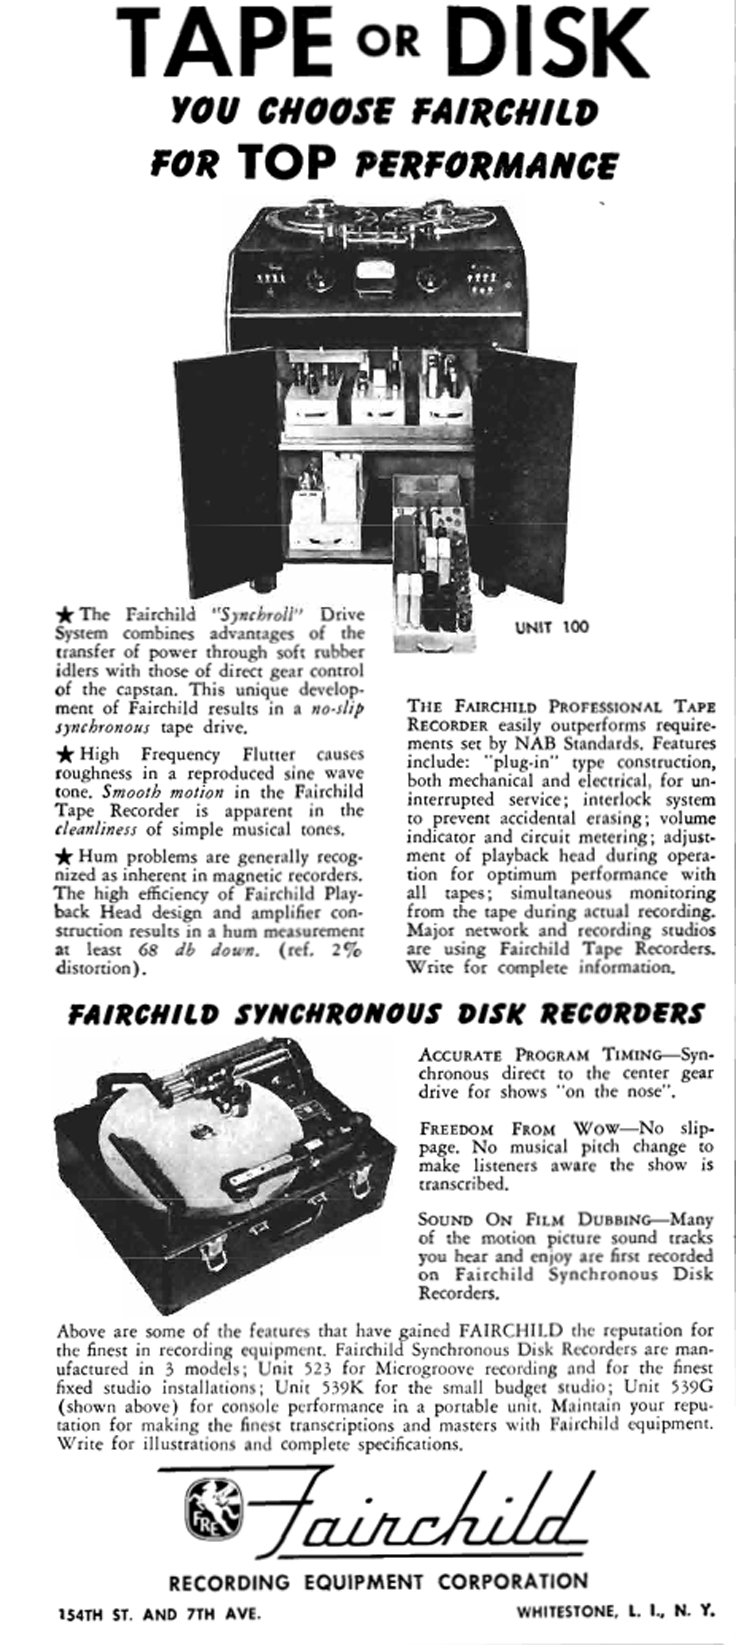 1950 ad for Fairchild professional reel to reel tape recorders in Reel2ReelTexas.com's vintage recording collection